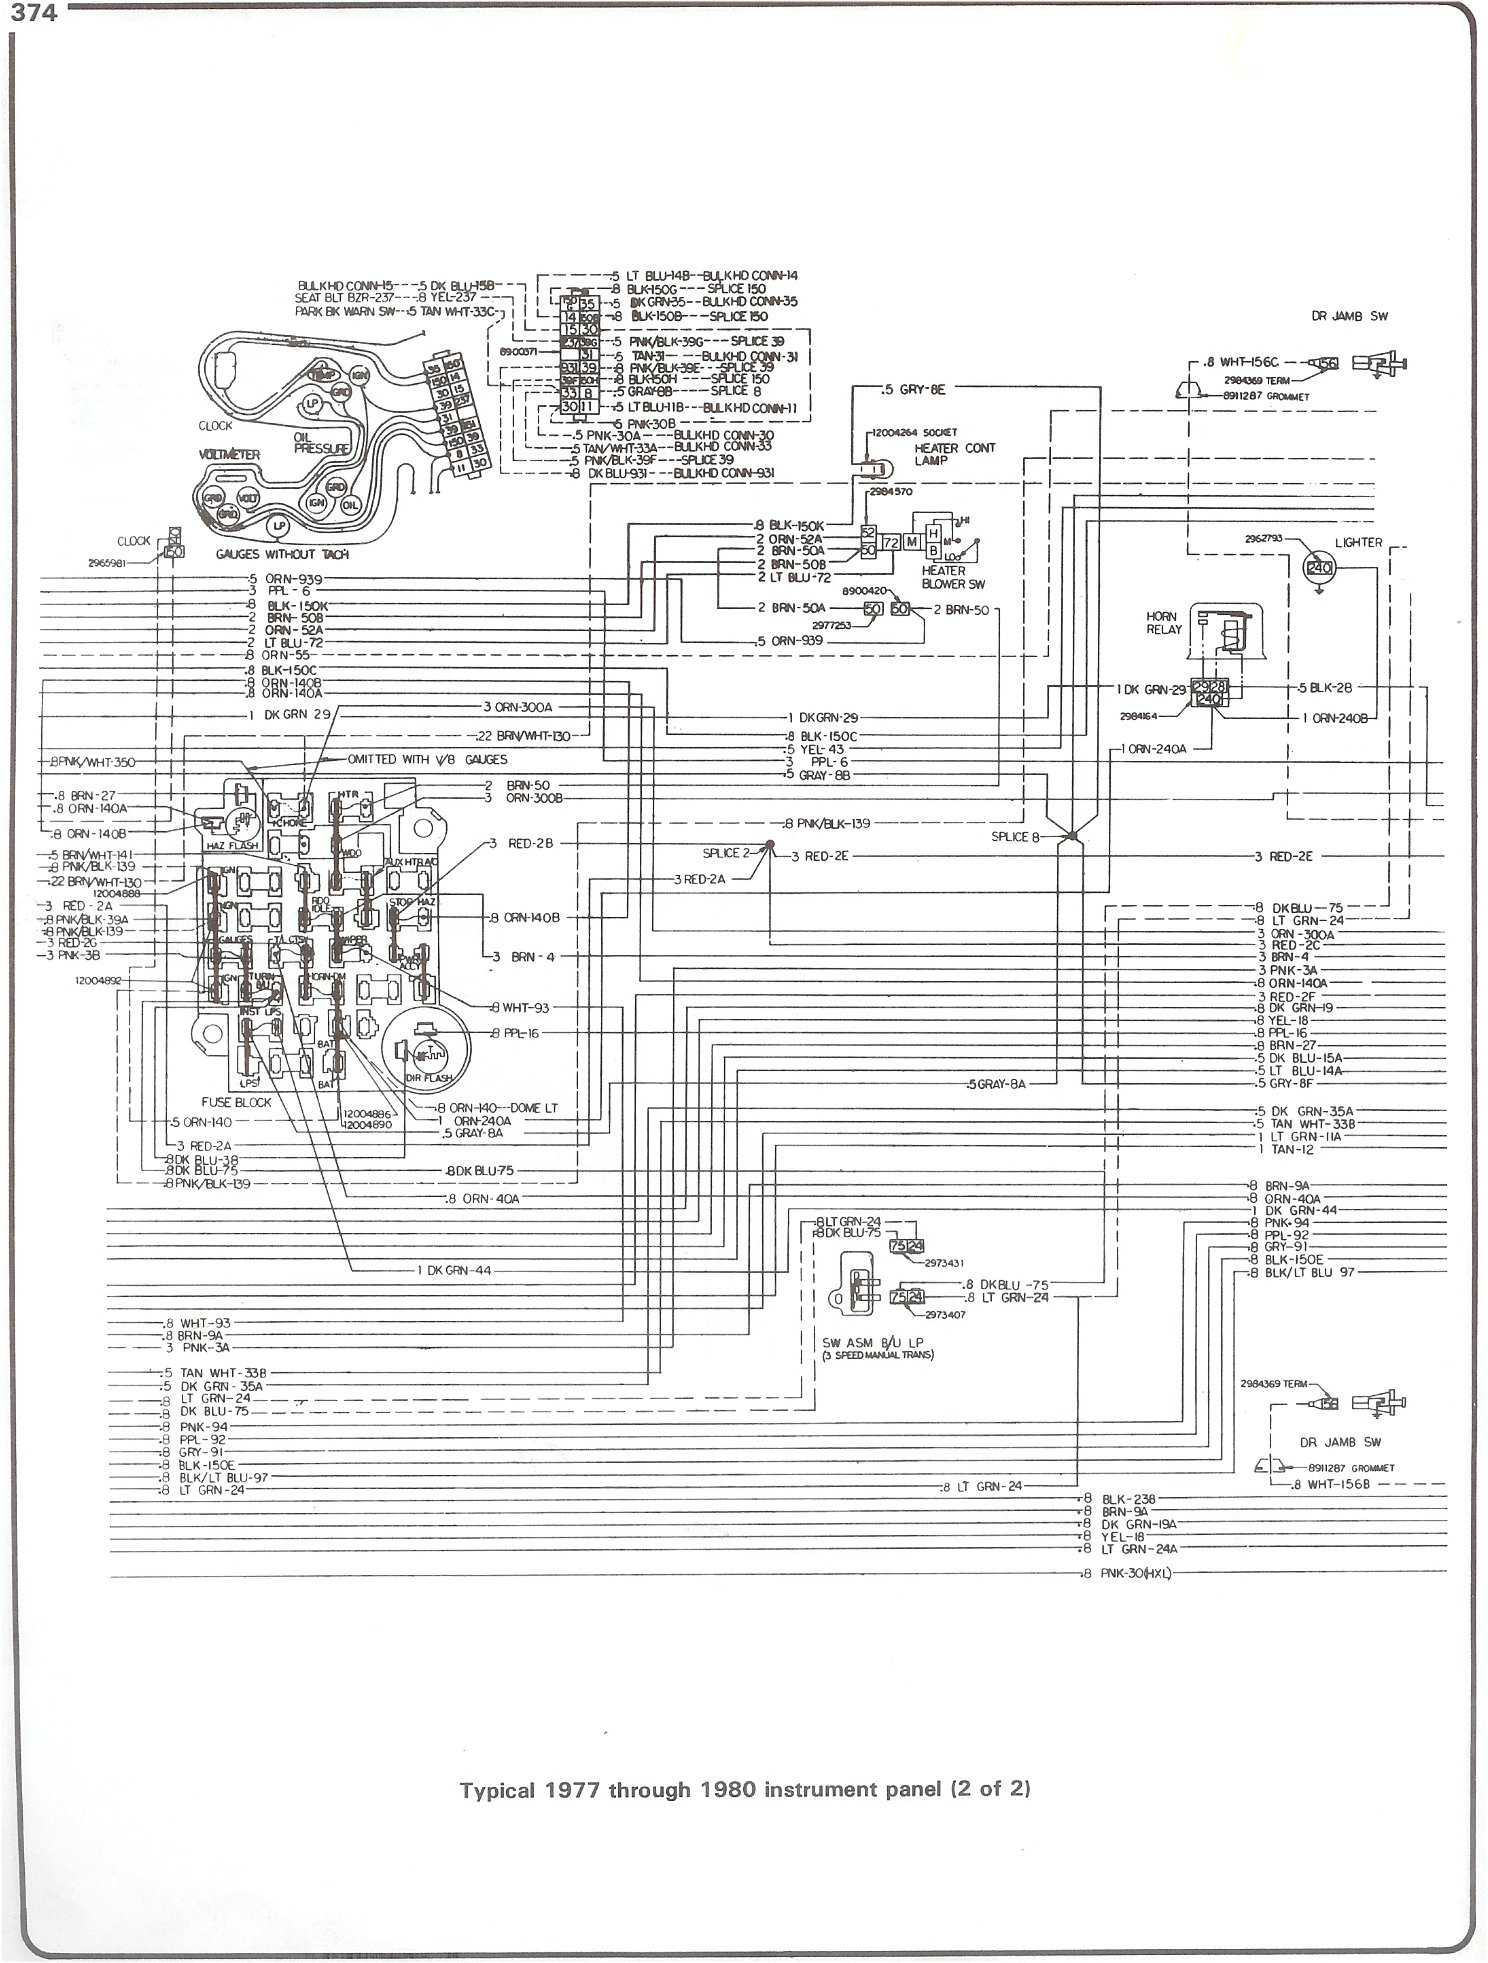 77 80_instrument_pg2 complete 73 87 wiring diagrams wiring diagram for 1986 chevy p30 7.4l at bayanpartner.co